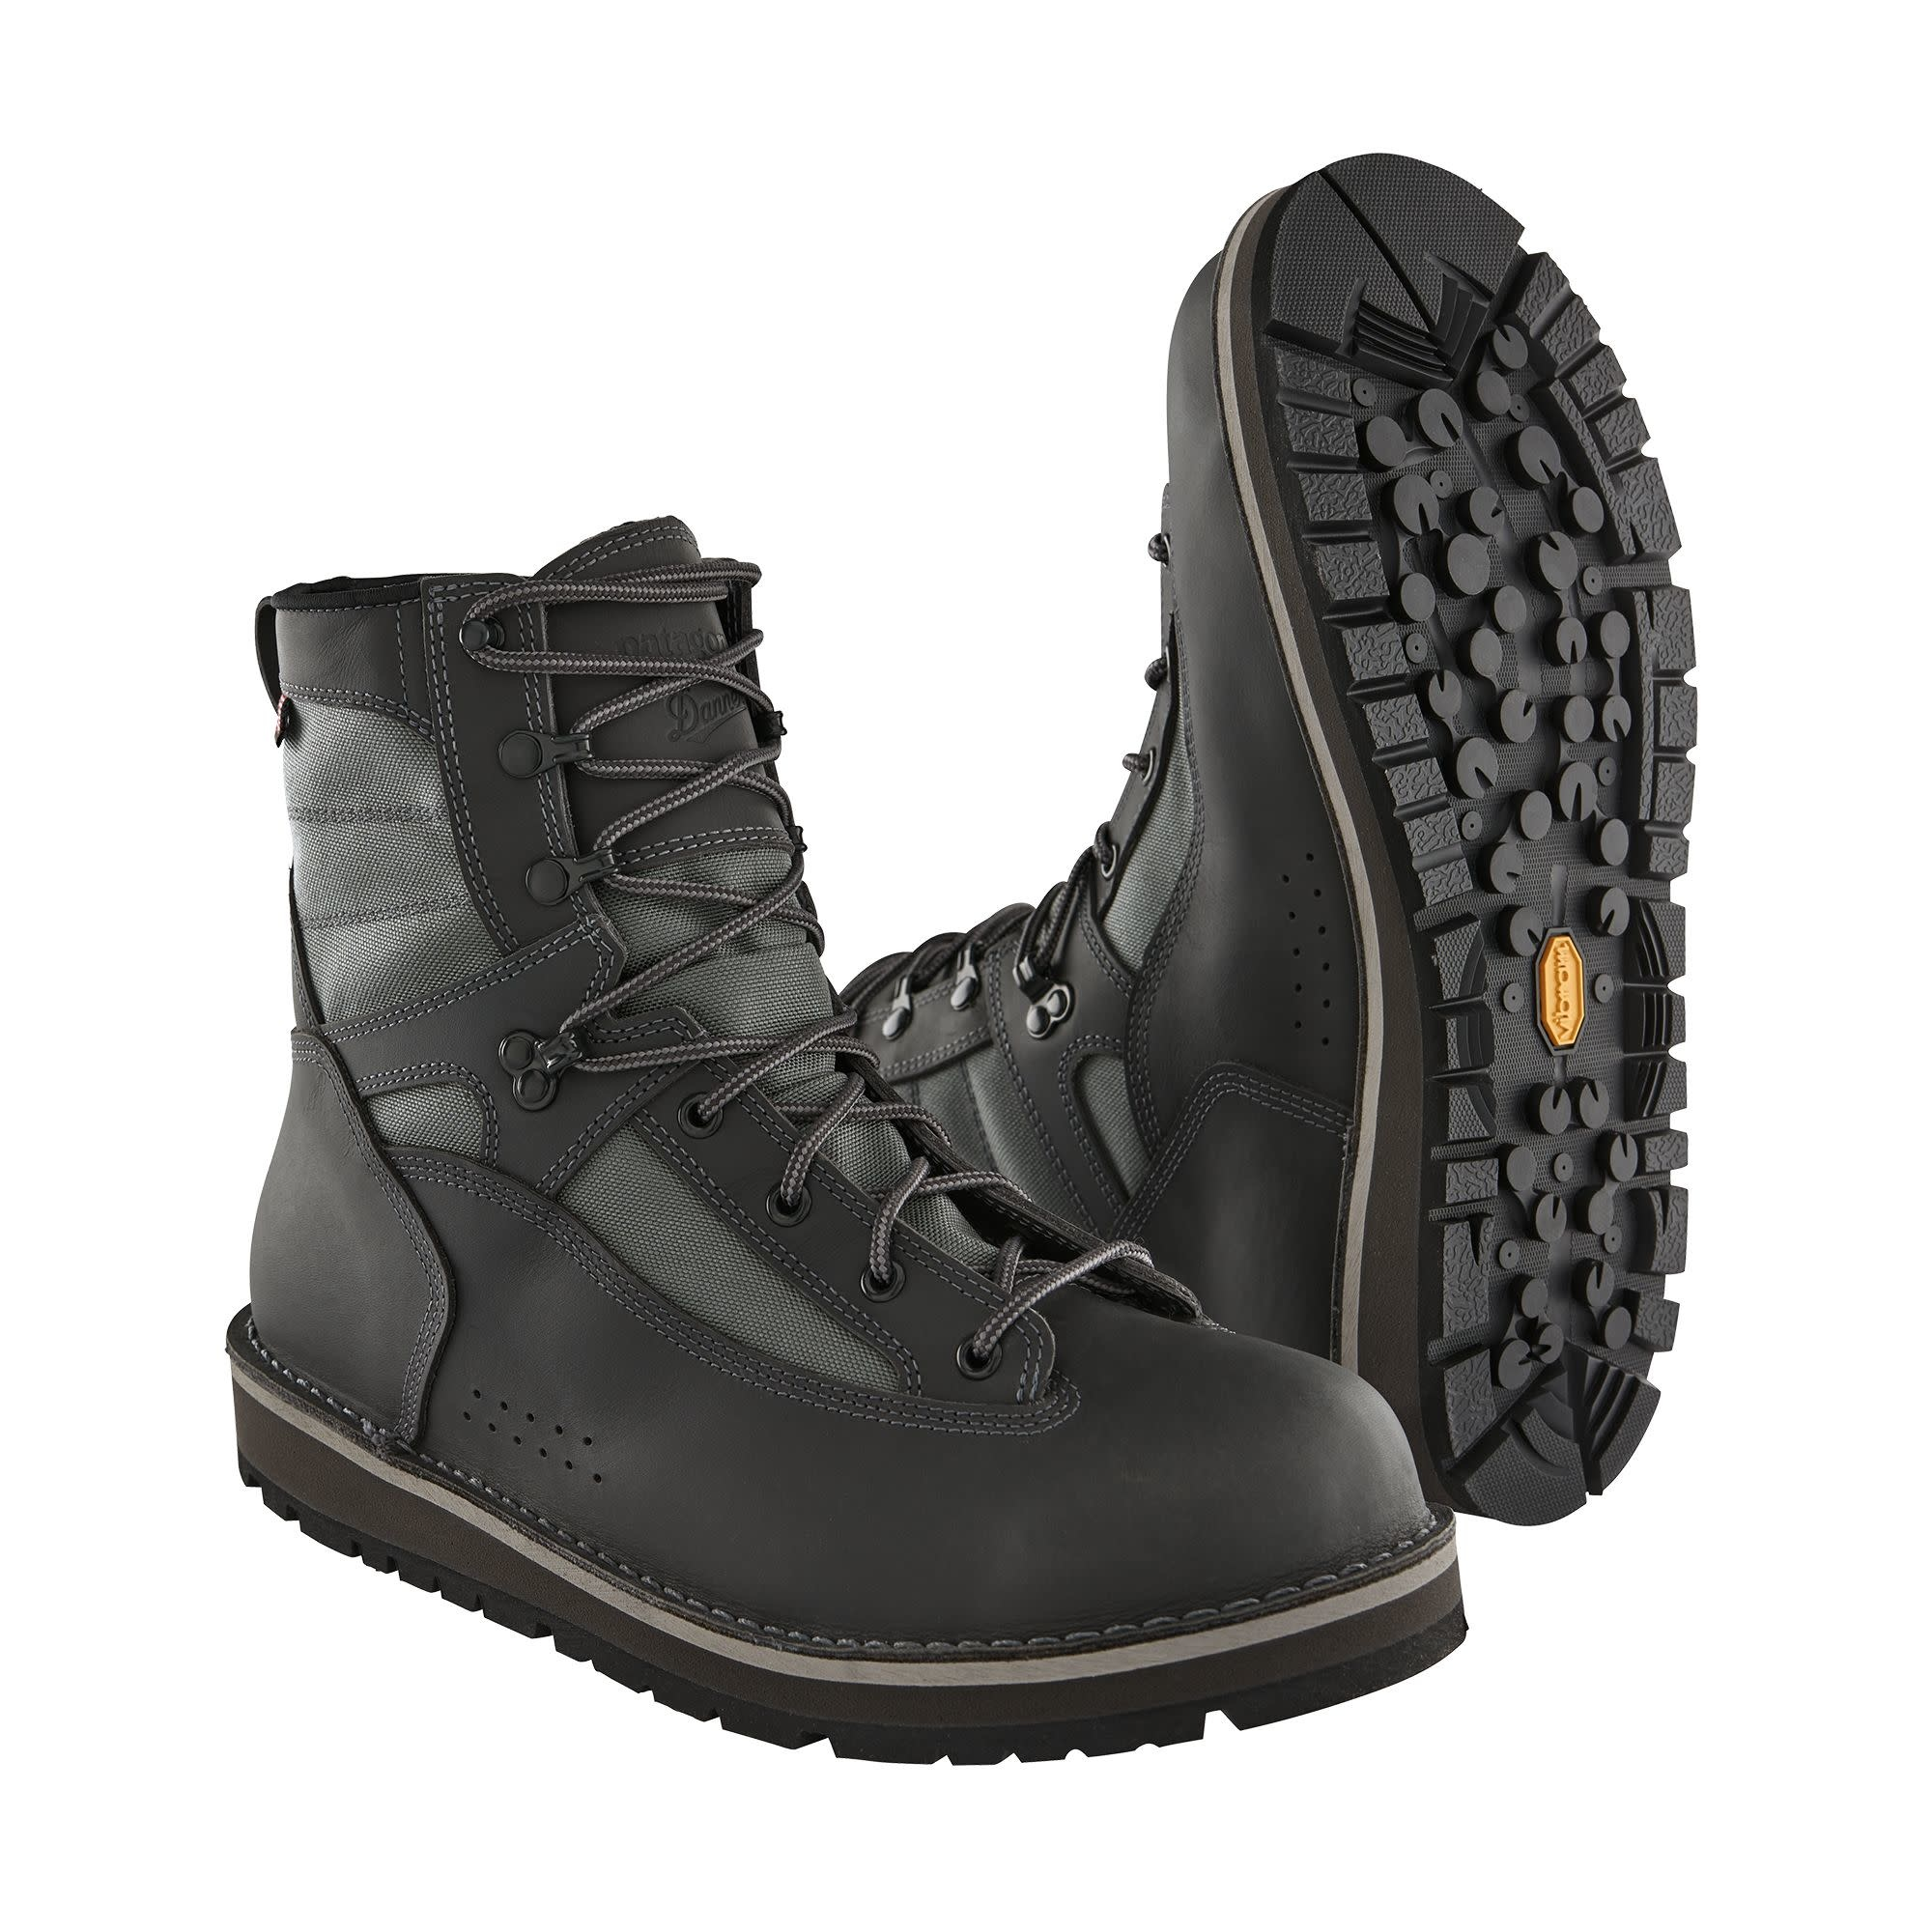 Patagonia Patagonia by Danner Foot Tractor Wading Boots,